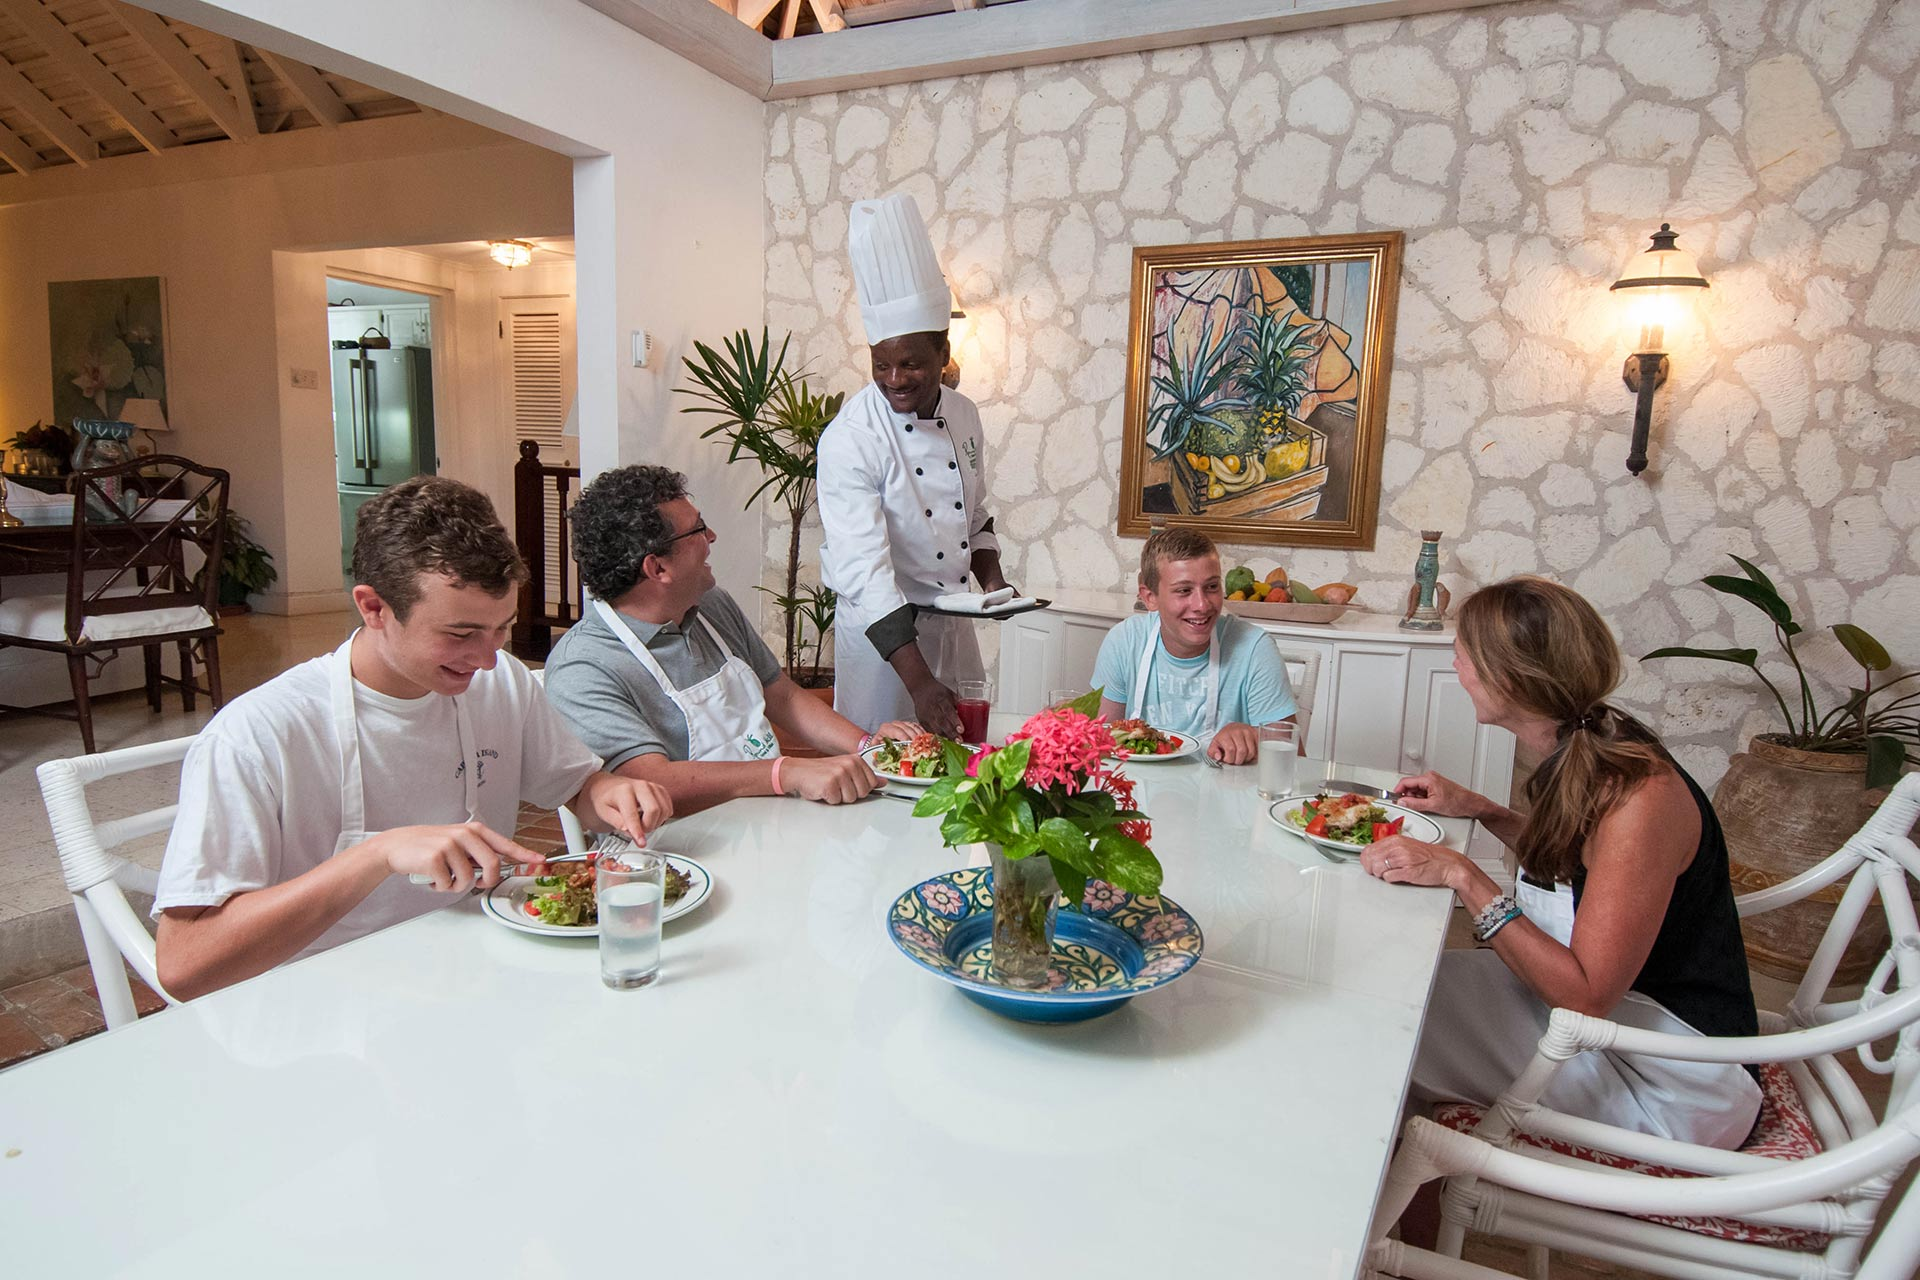 A family enjoying a meal at Round Hill Hotel & Villas in Jamaica.